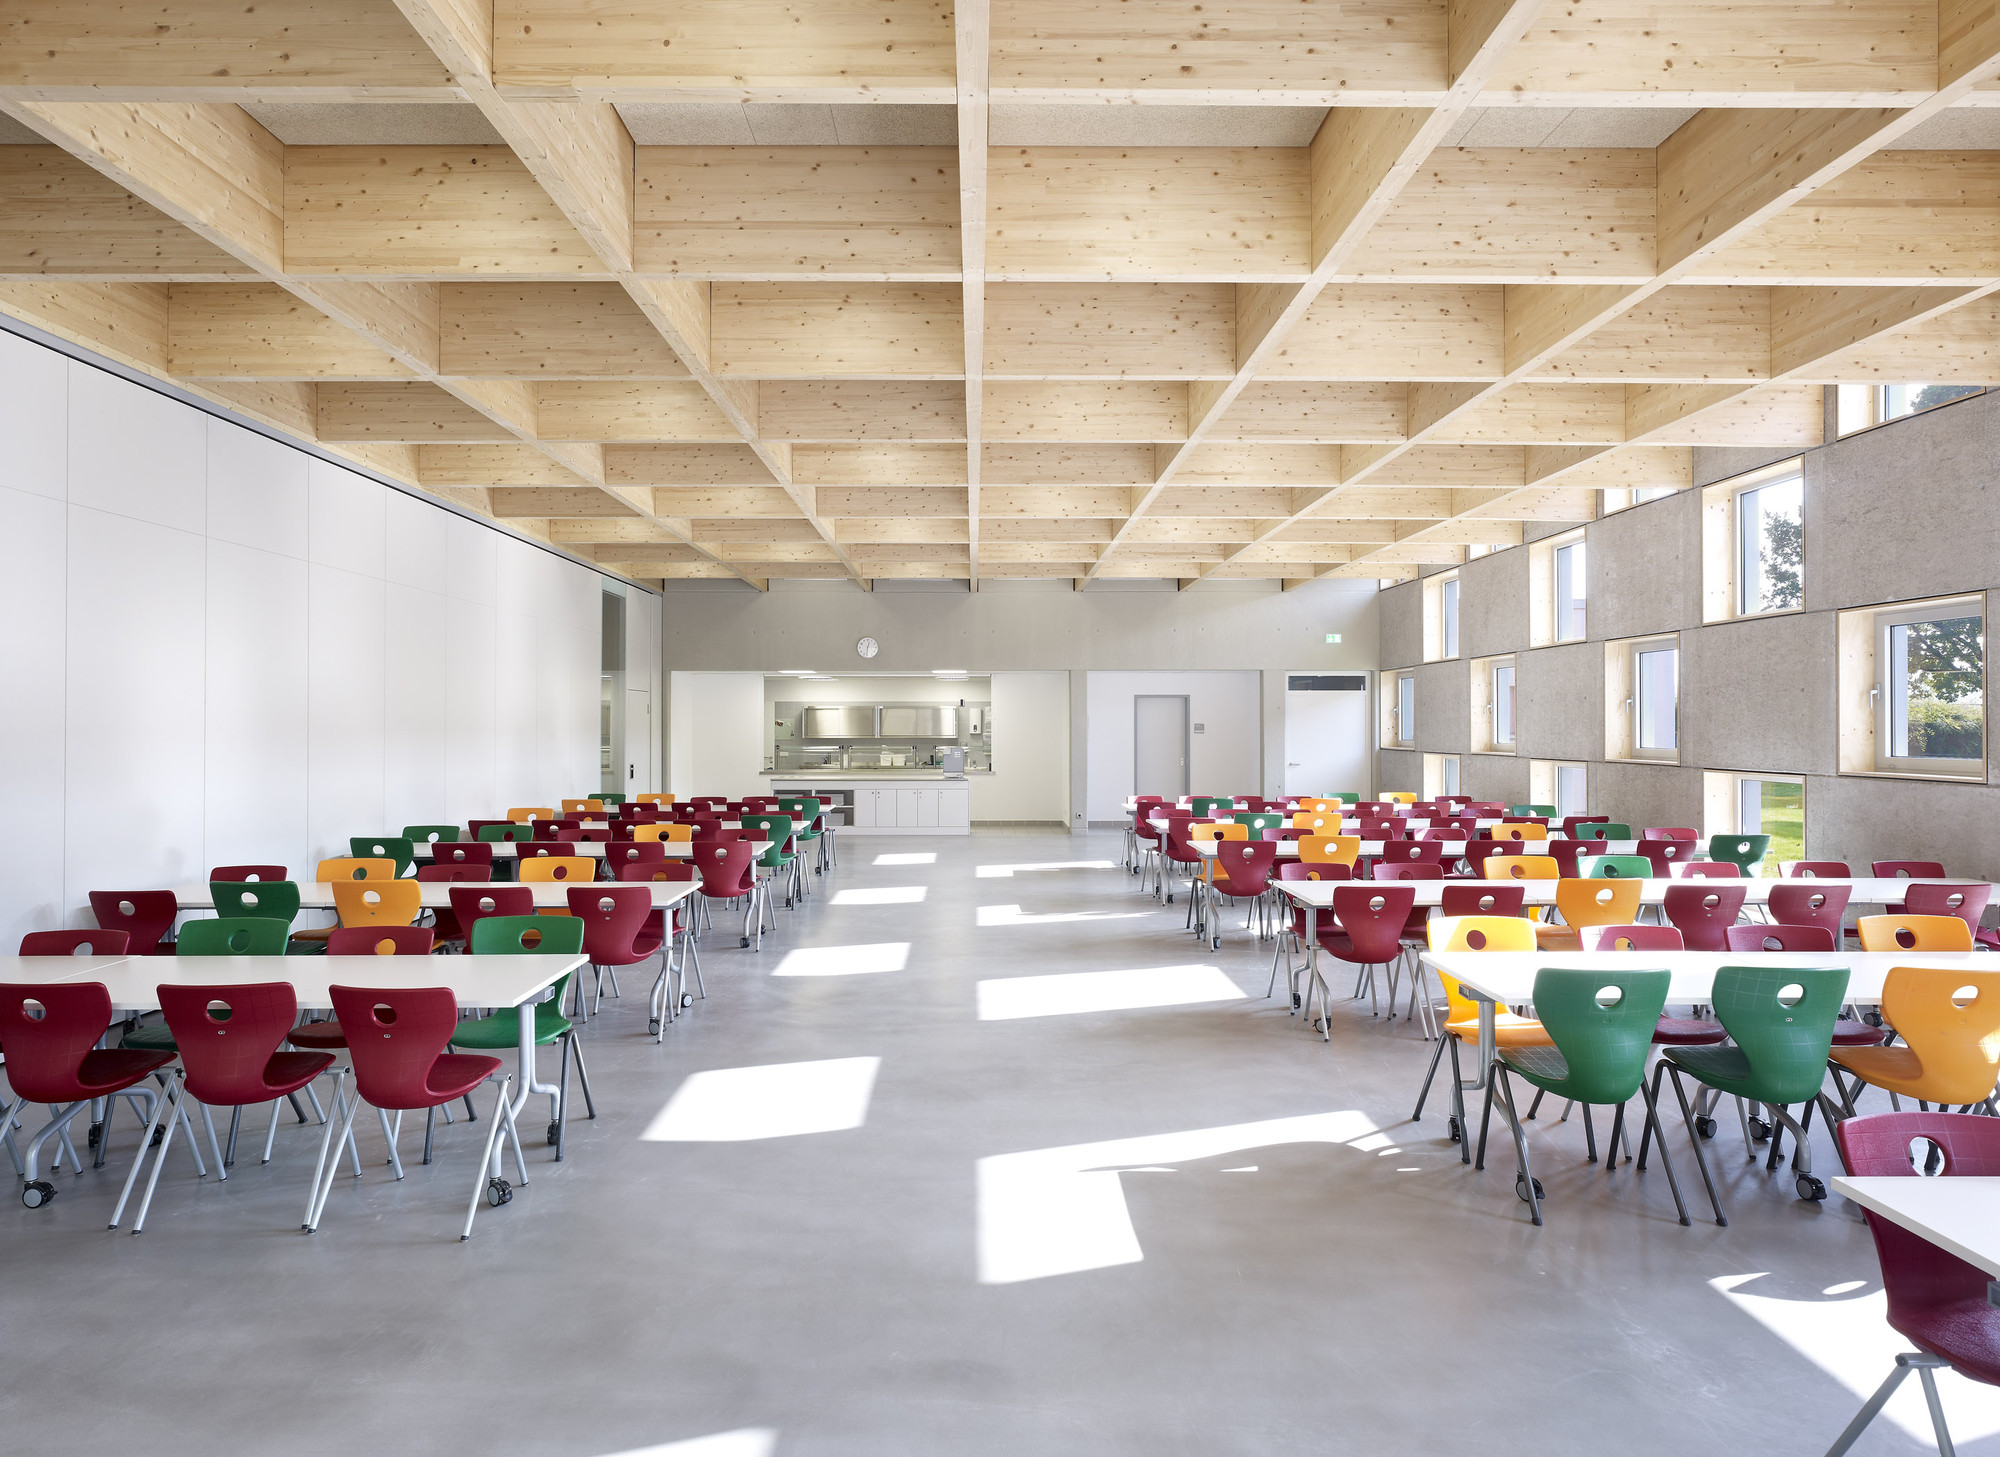 Gallery of Salmtal Secondary School Canteen ...